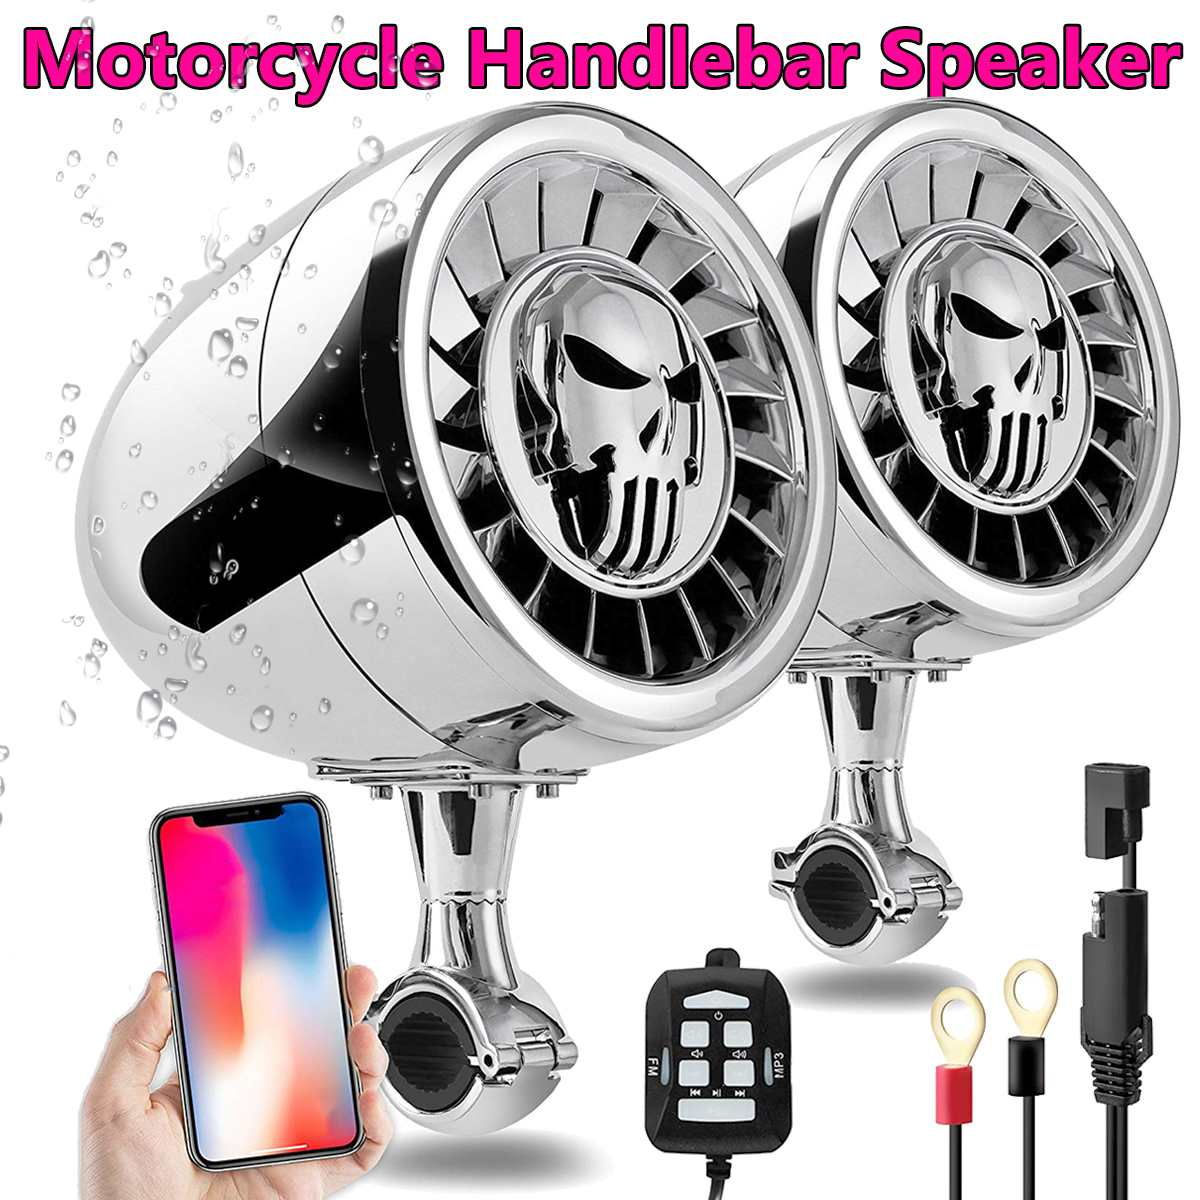 600W 5 Inch MP3 Music Audio Player bluetooth Speakers For Motorcycle Waterproof Portable Stereo Motos Audio Amp System|Motorcycle Audio| |  - title=